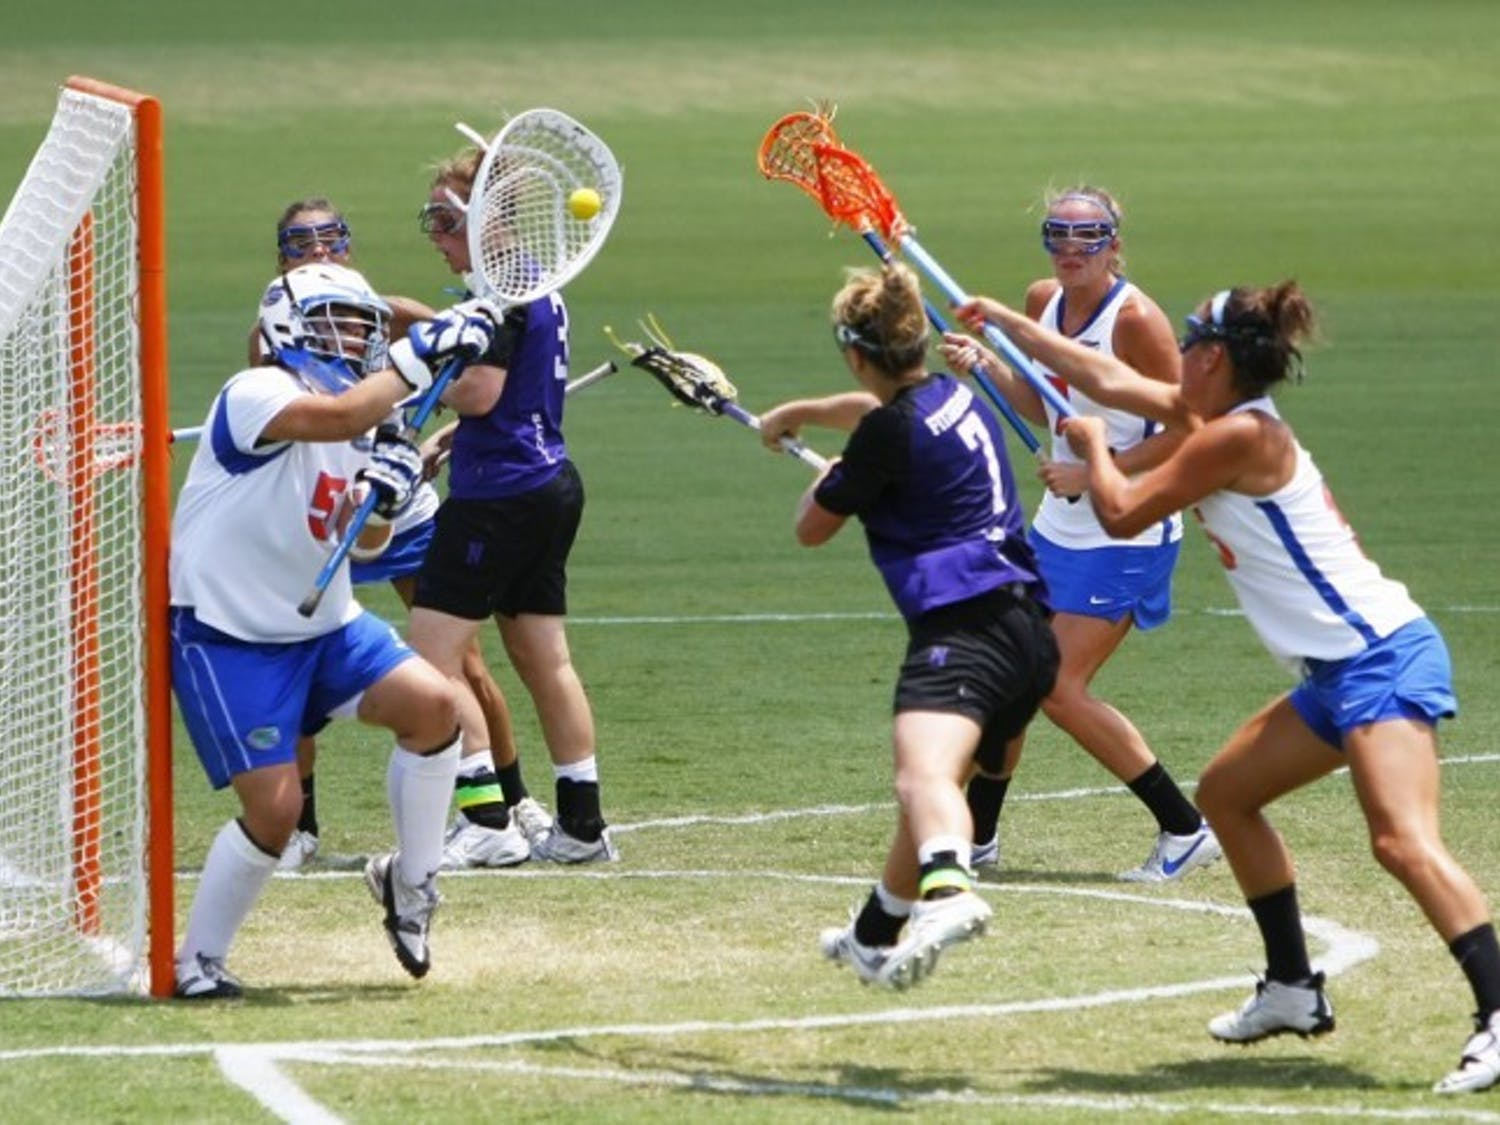 Mikey Meagher (5) defends a goal against Northwestern on May 5, 2012. Coach Amanda O'Leary pulled Meagher in the second half of Florida's loss to Penn State to give the Gators an extra defender.